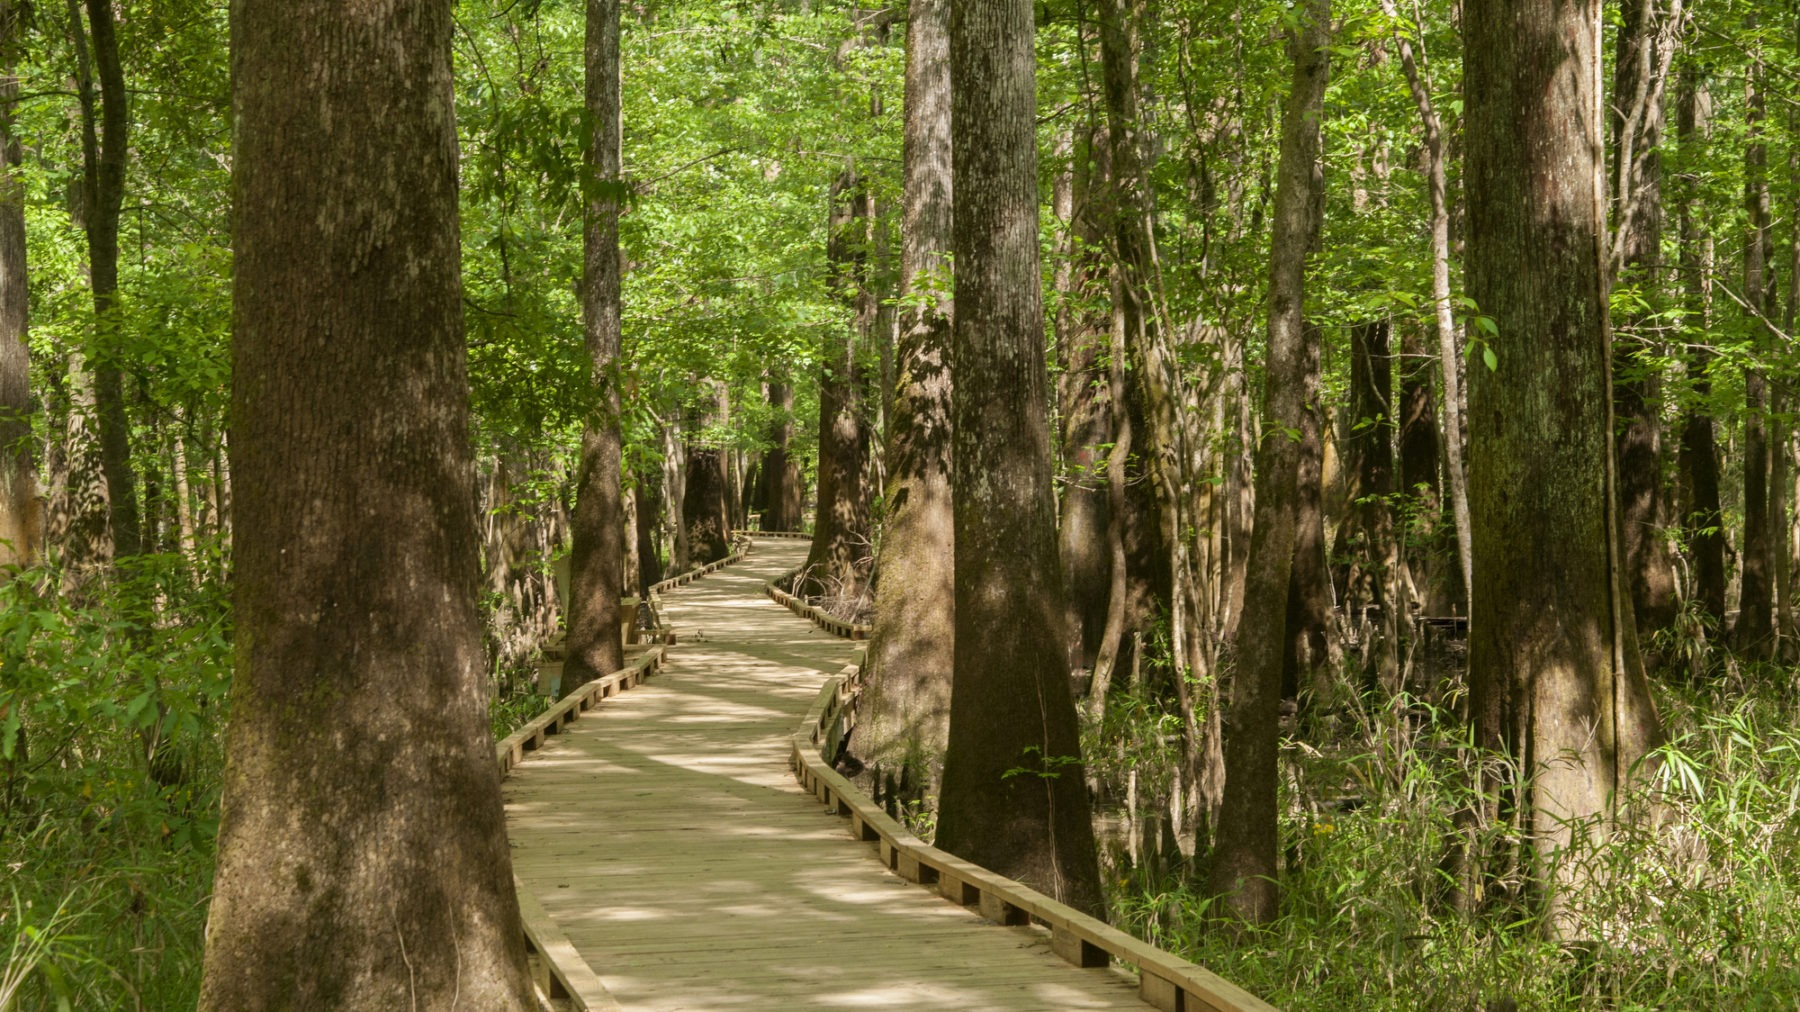 Lower Boardwalk at Congaree National Park